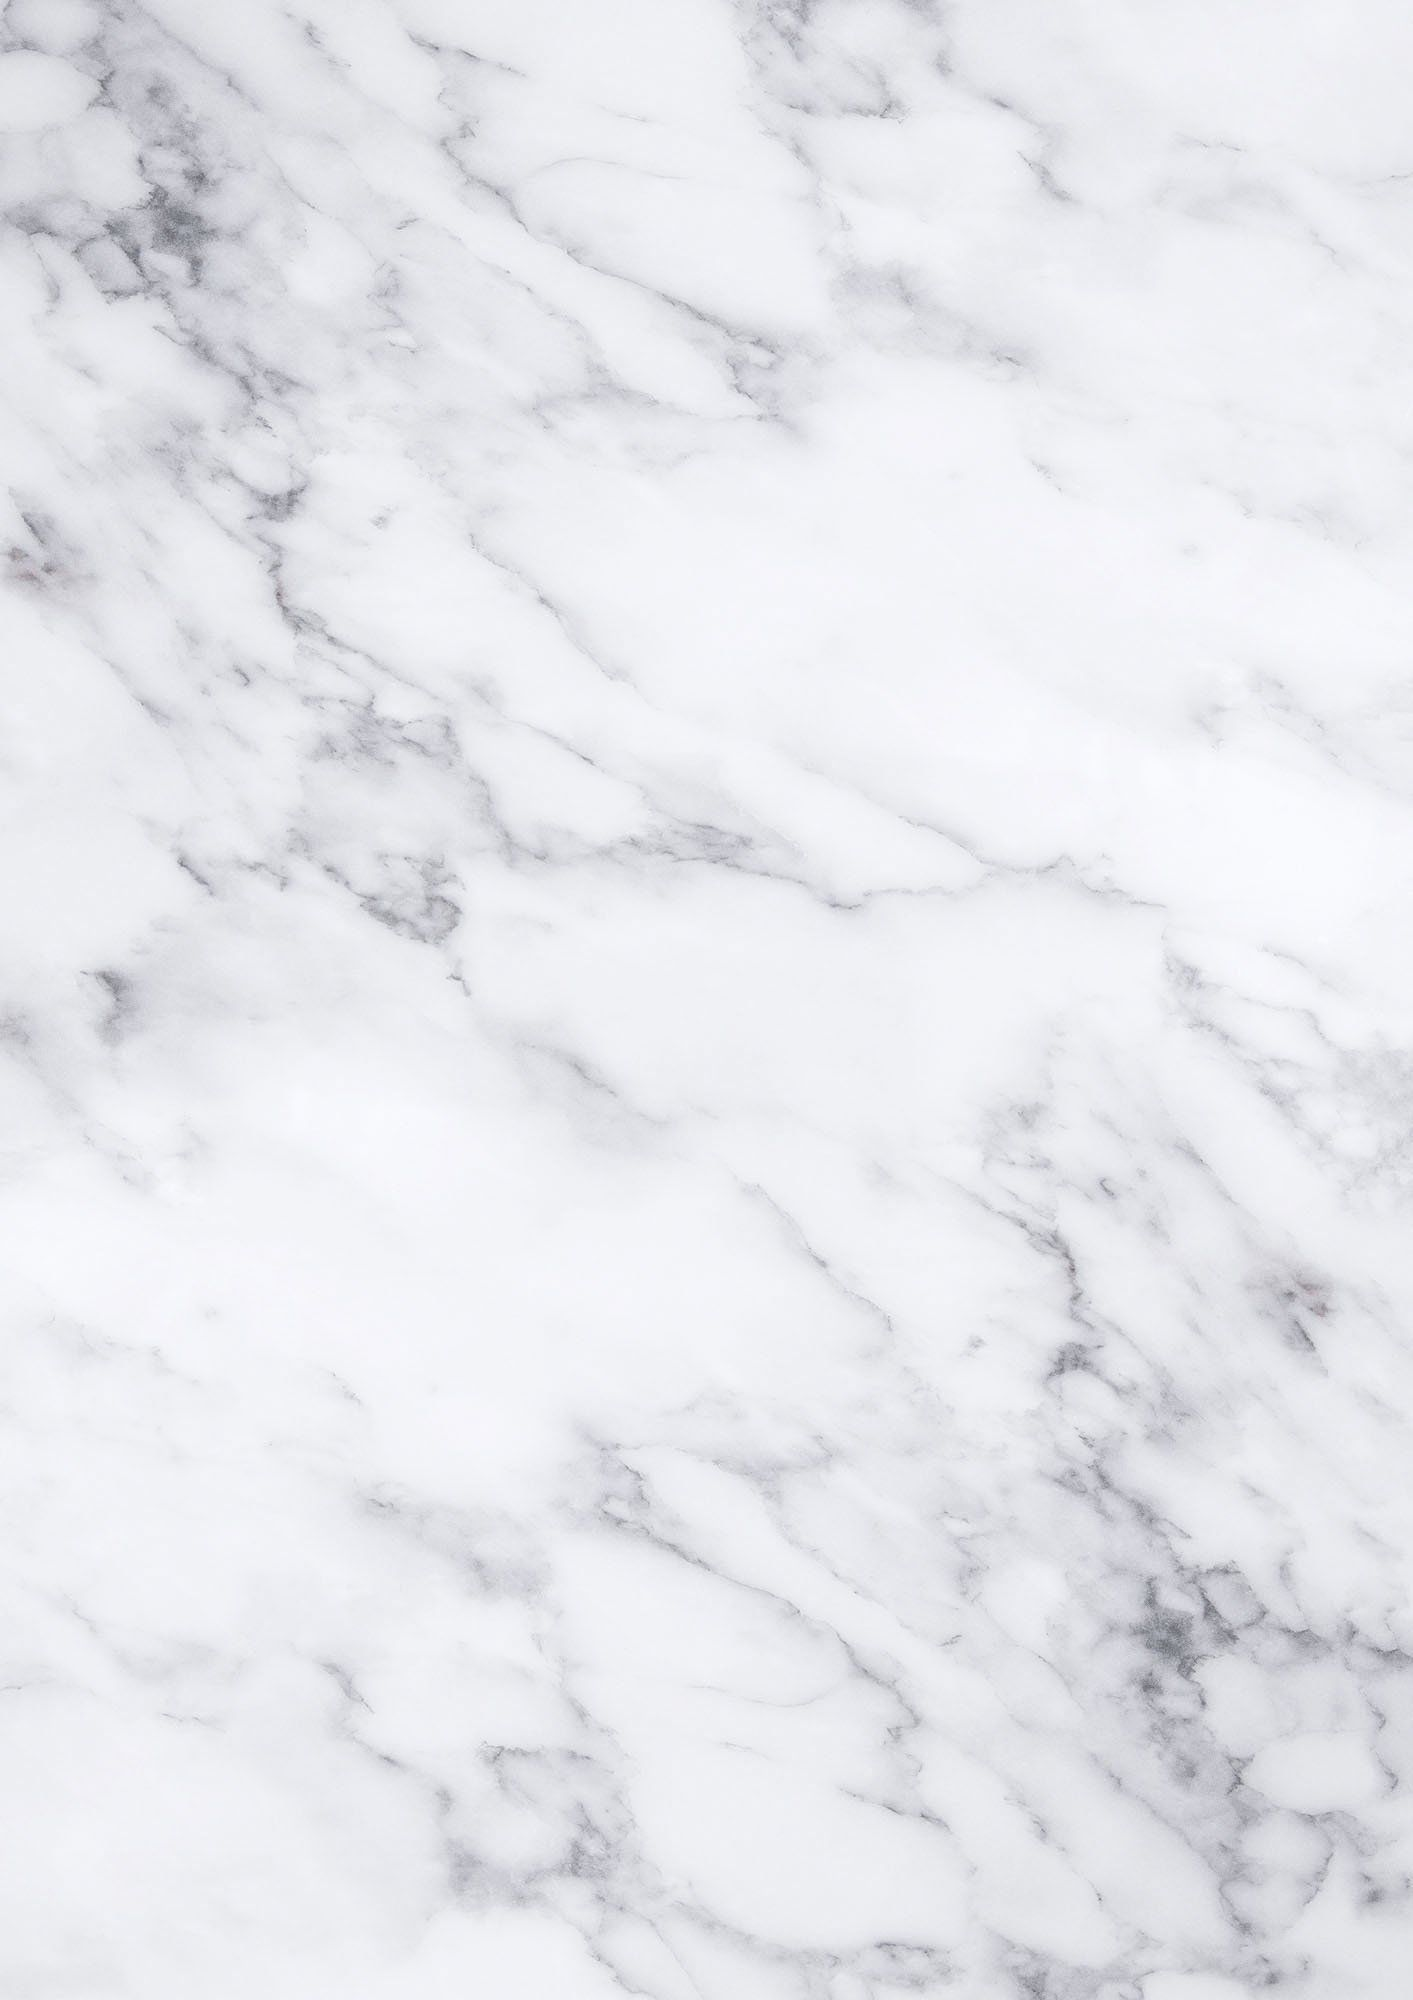 White Marble Marble Wallpaper Phone Marble Iphone Wallpaper